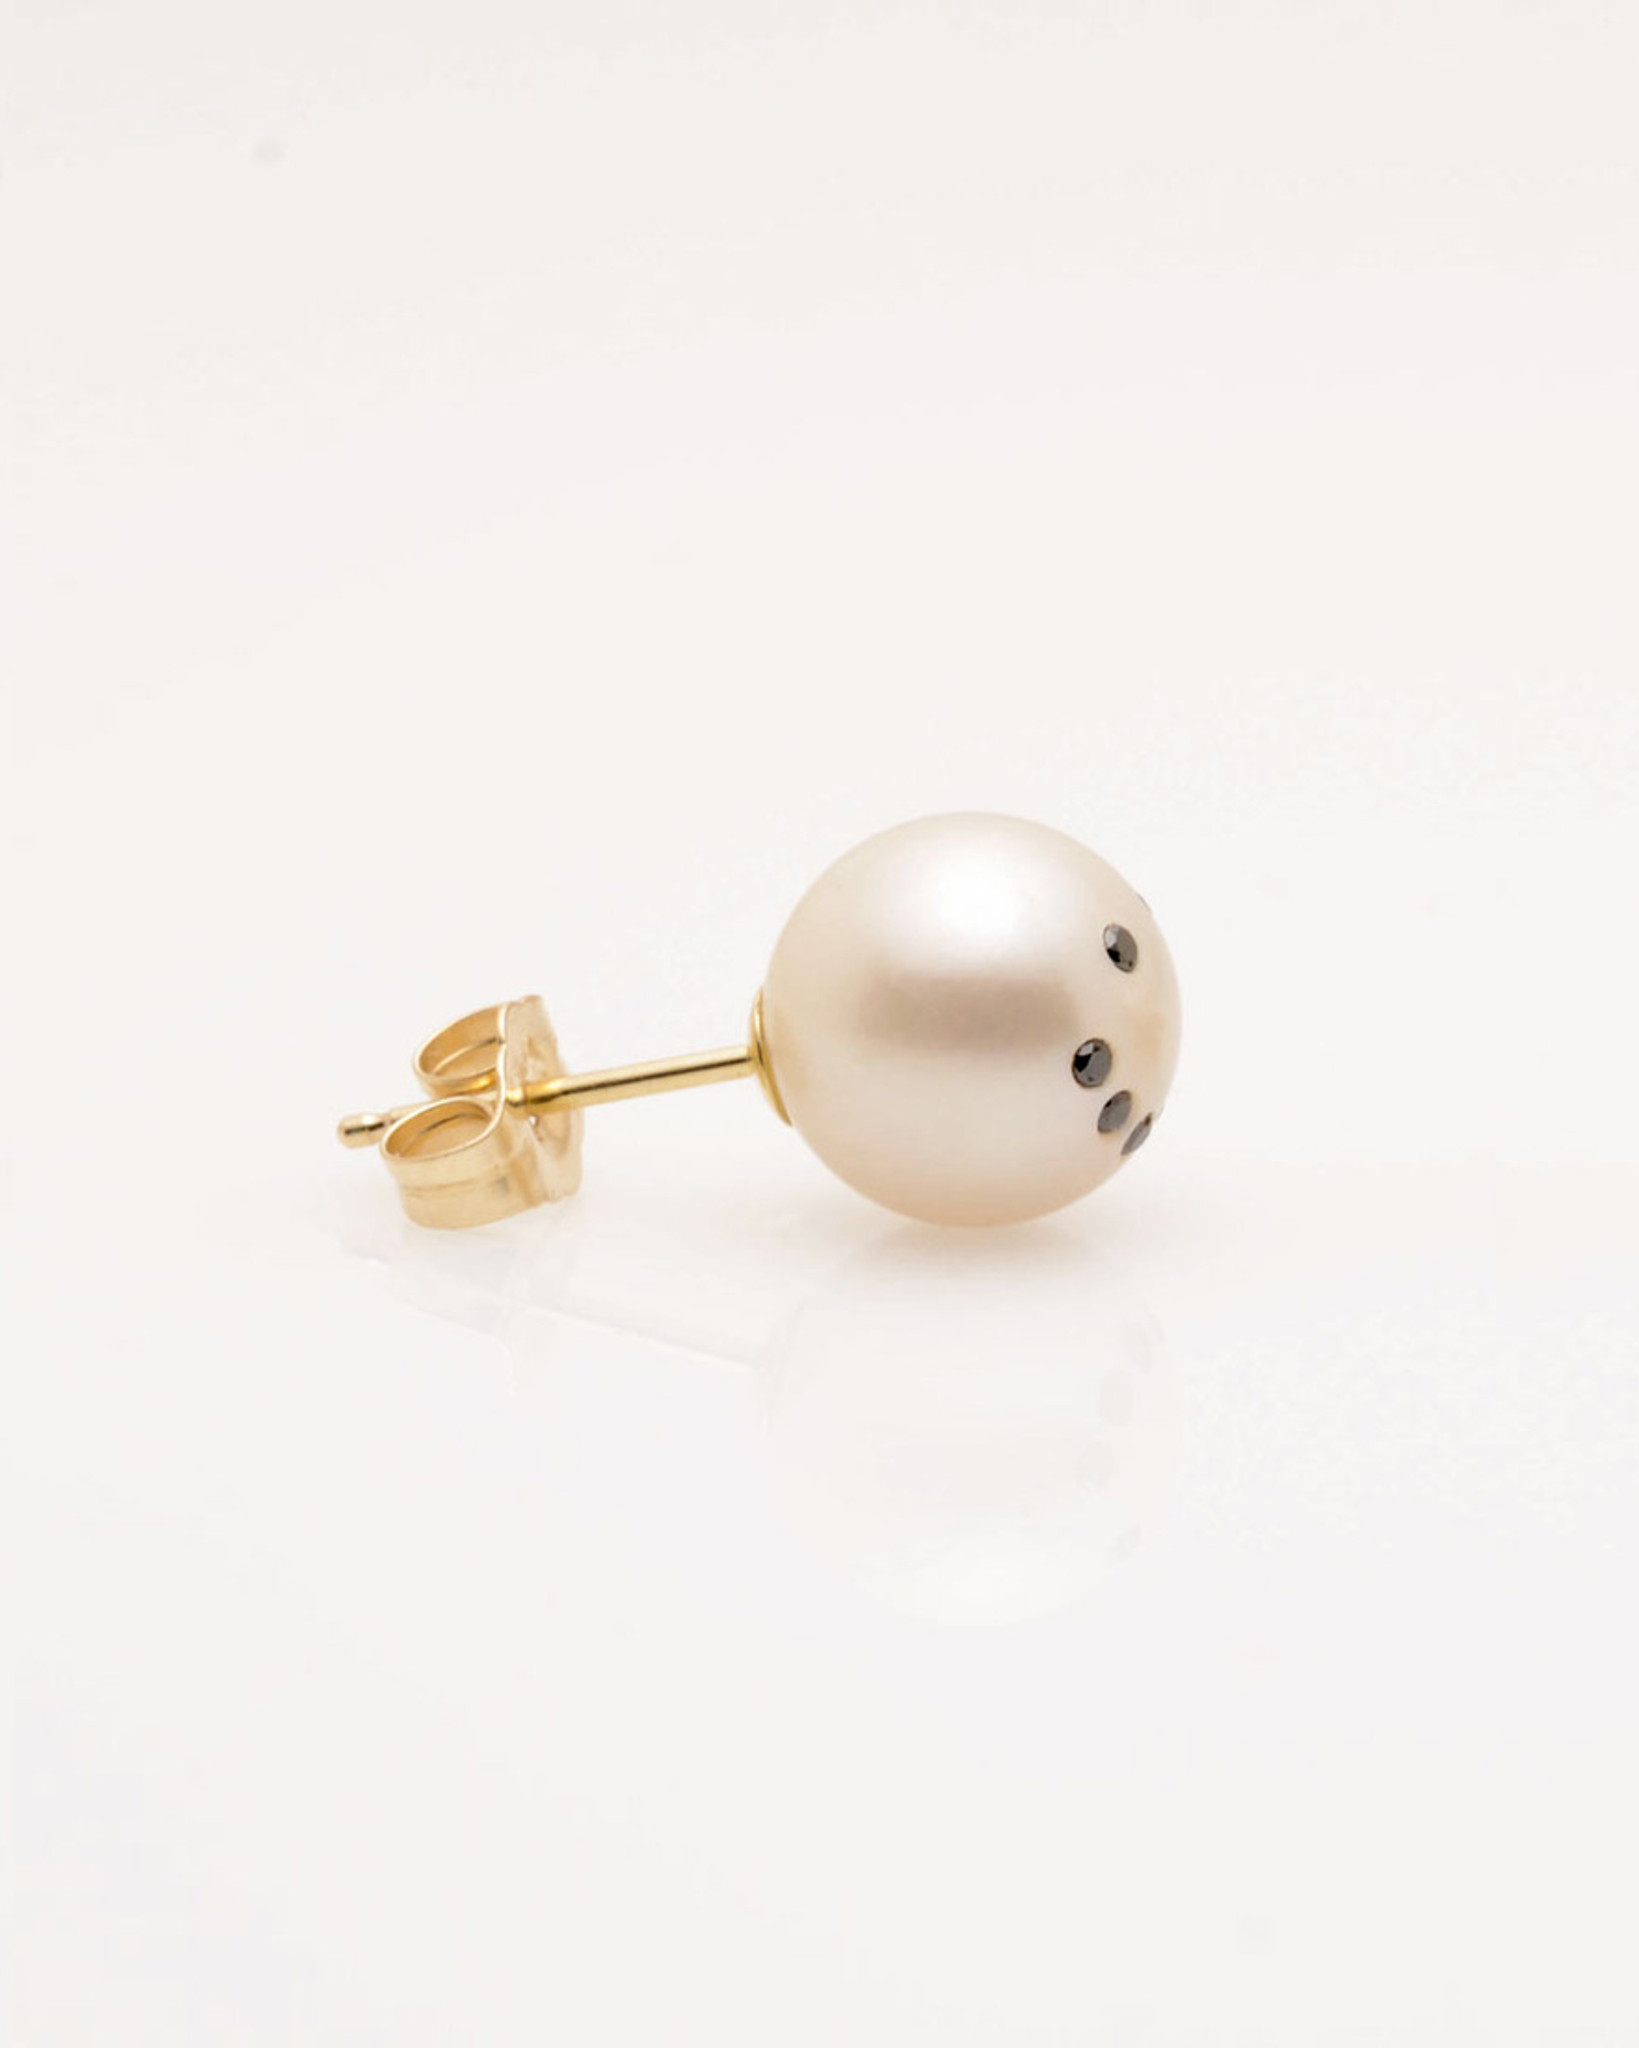 product my lightbox one only single pearl earrings erickson and beamon